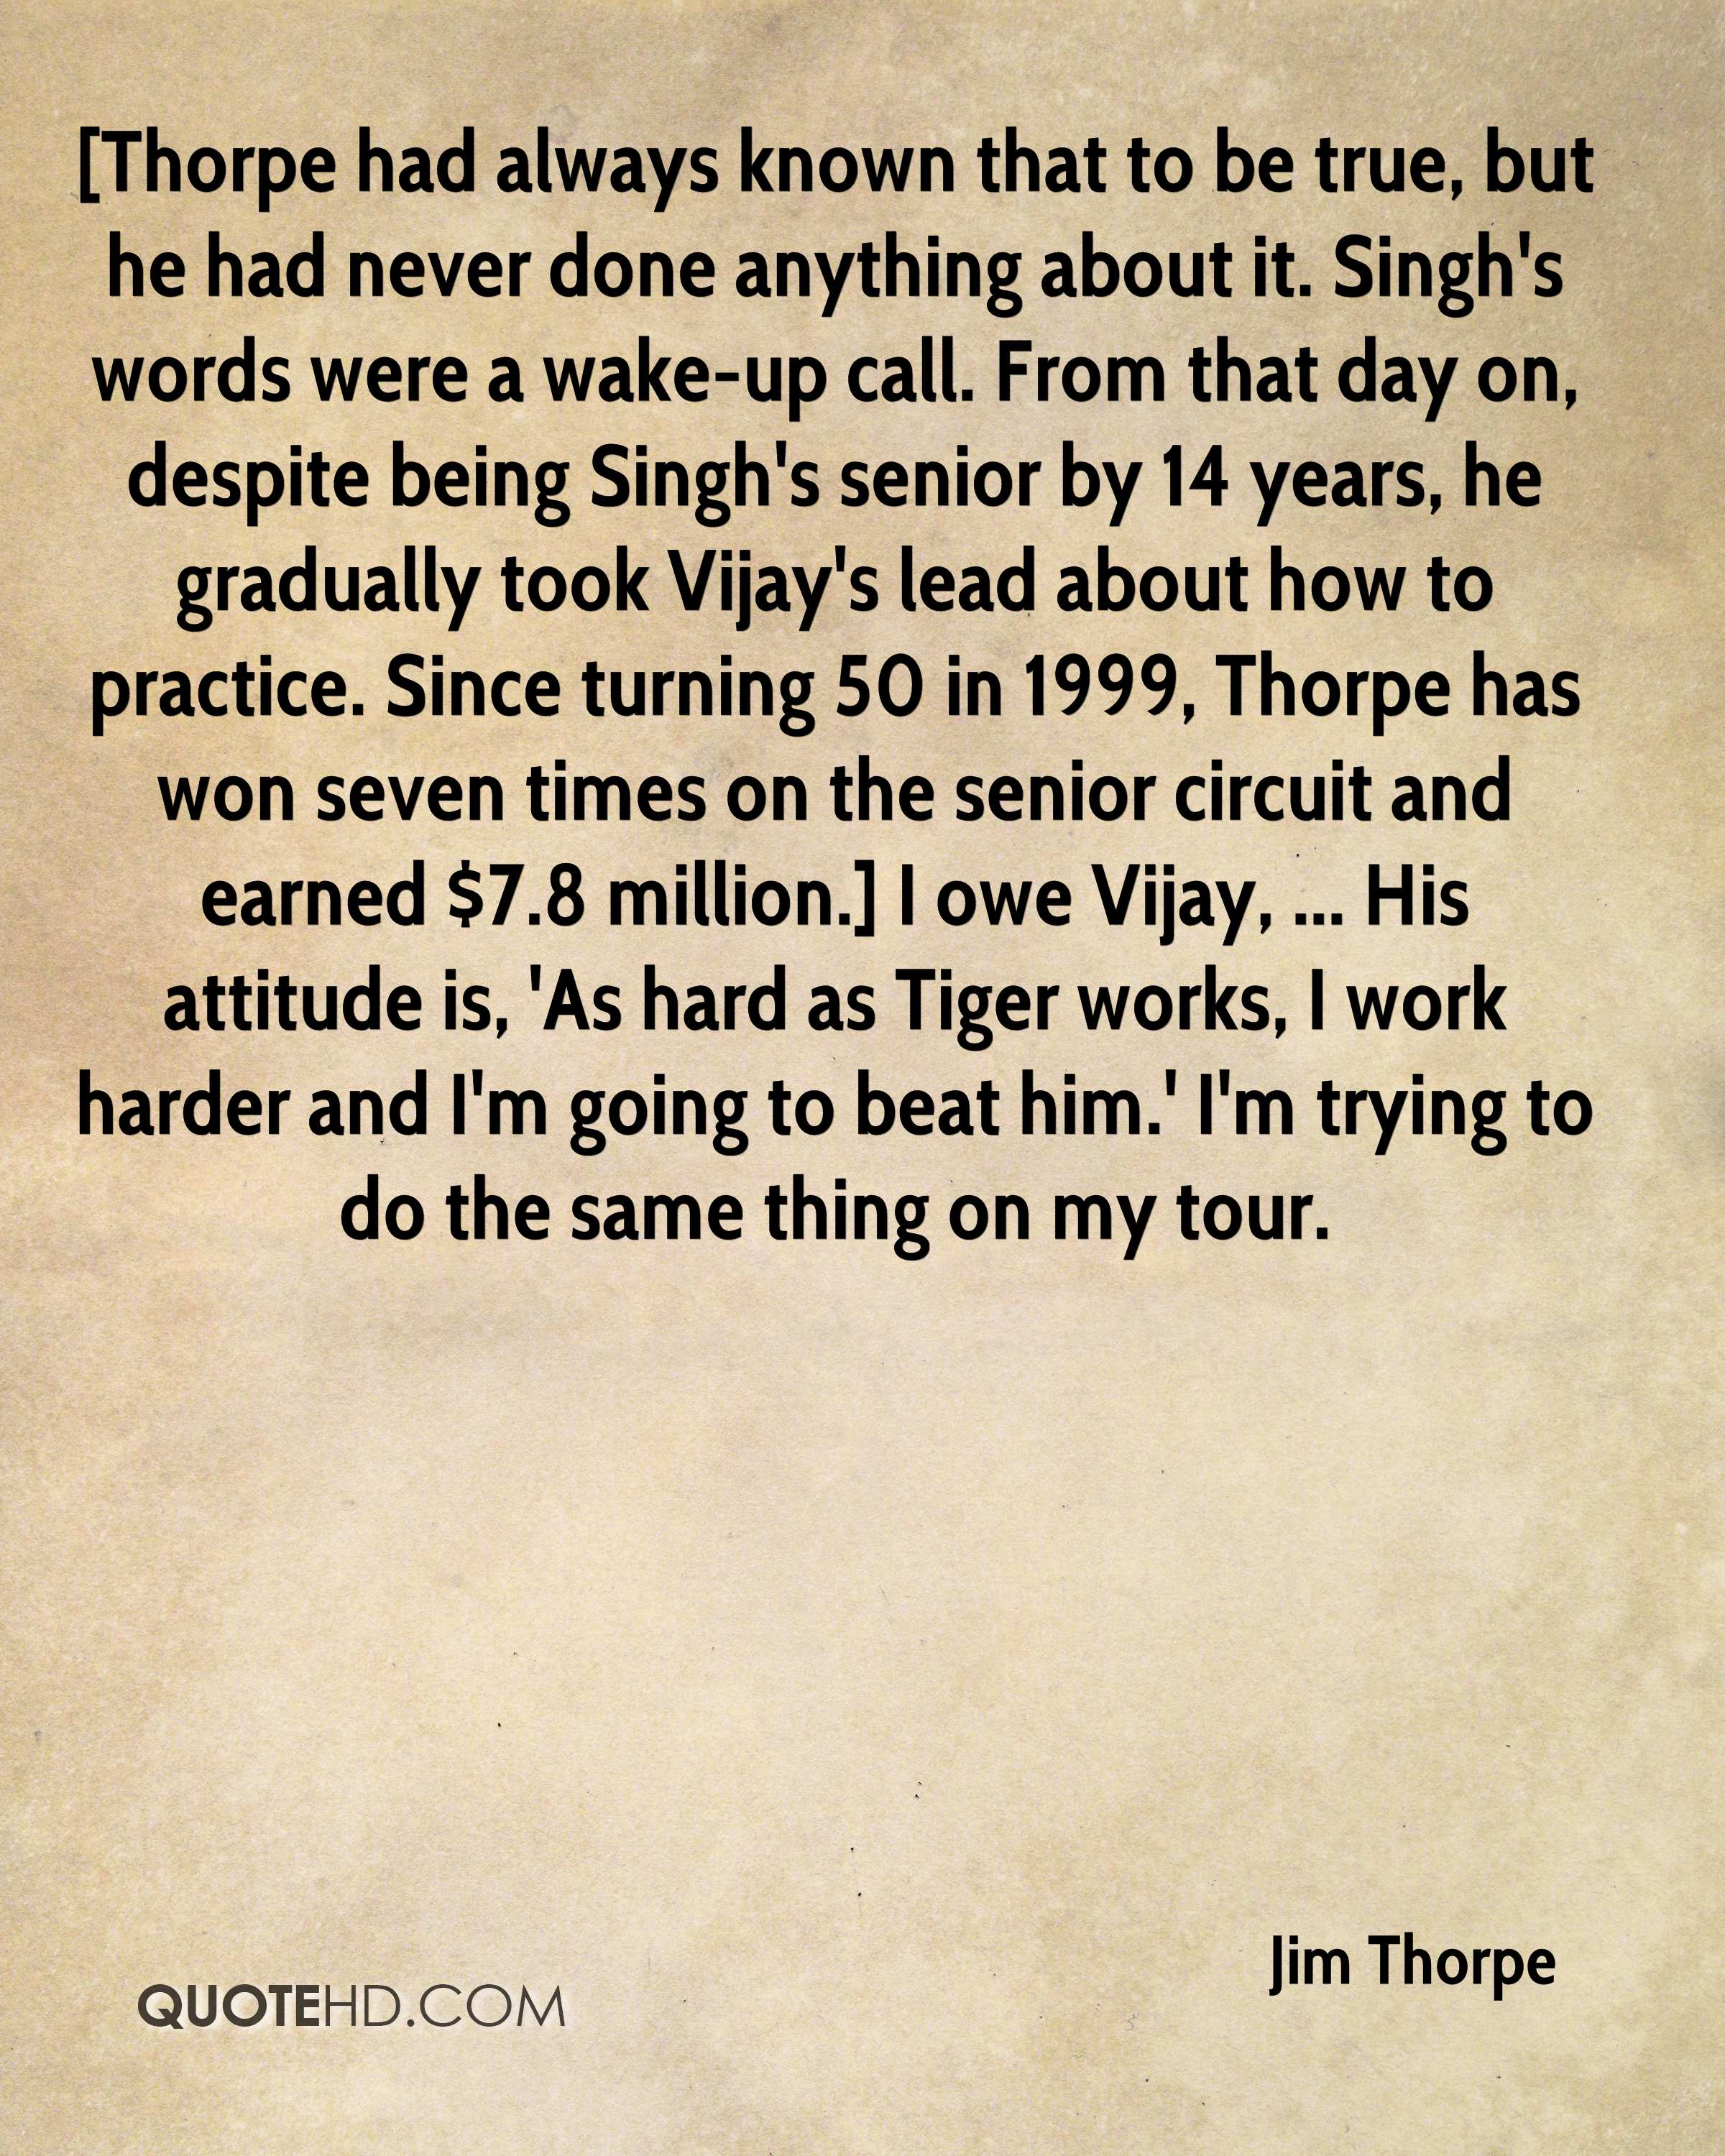 [Thorpe had always known that to be true, but he had never done anything about it. Singh's words were a wake-up call. From that day on, despite being Singh's senior by 14 years, he gradually took Vijay's lead about how to practice. Since turning 50 in 1999, Thorpe has won seven times on the senior circuit and earned $7.8 million.] I owe Vijay, ... His attitude is, 'As hard as Tiger works, I work harder and I'm going to beat him.' I'm trying to do the same thing on my tour.